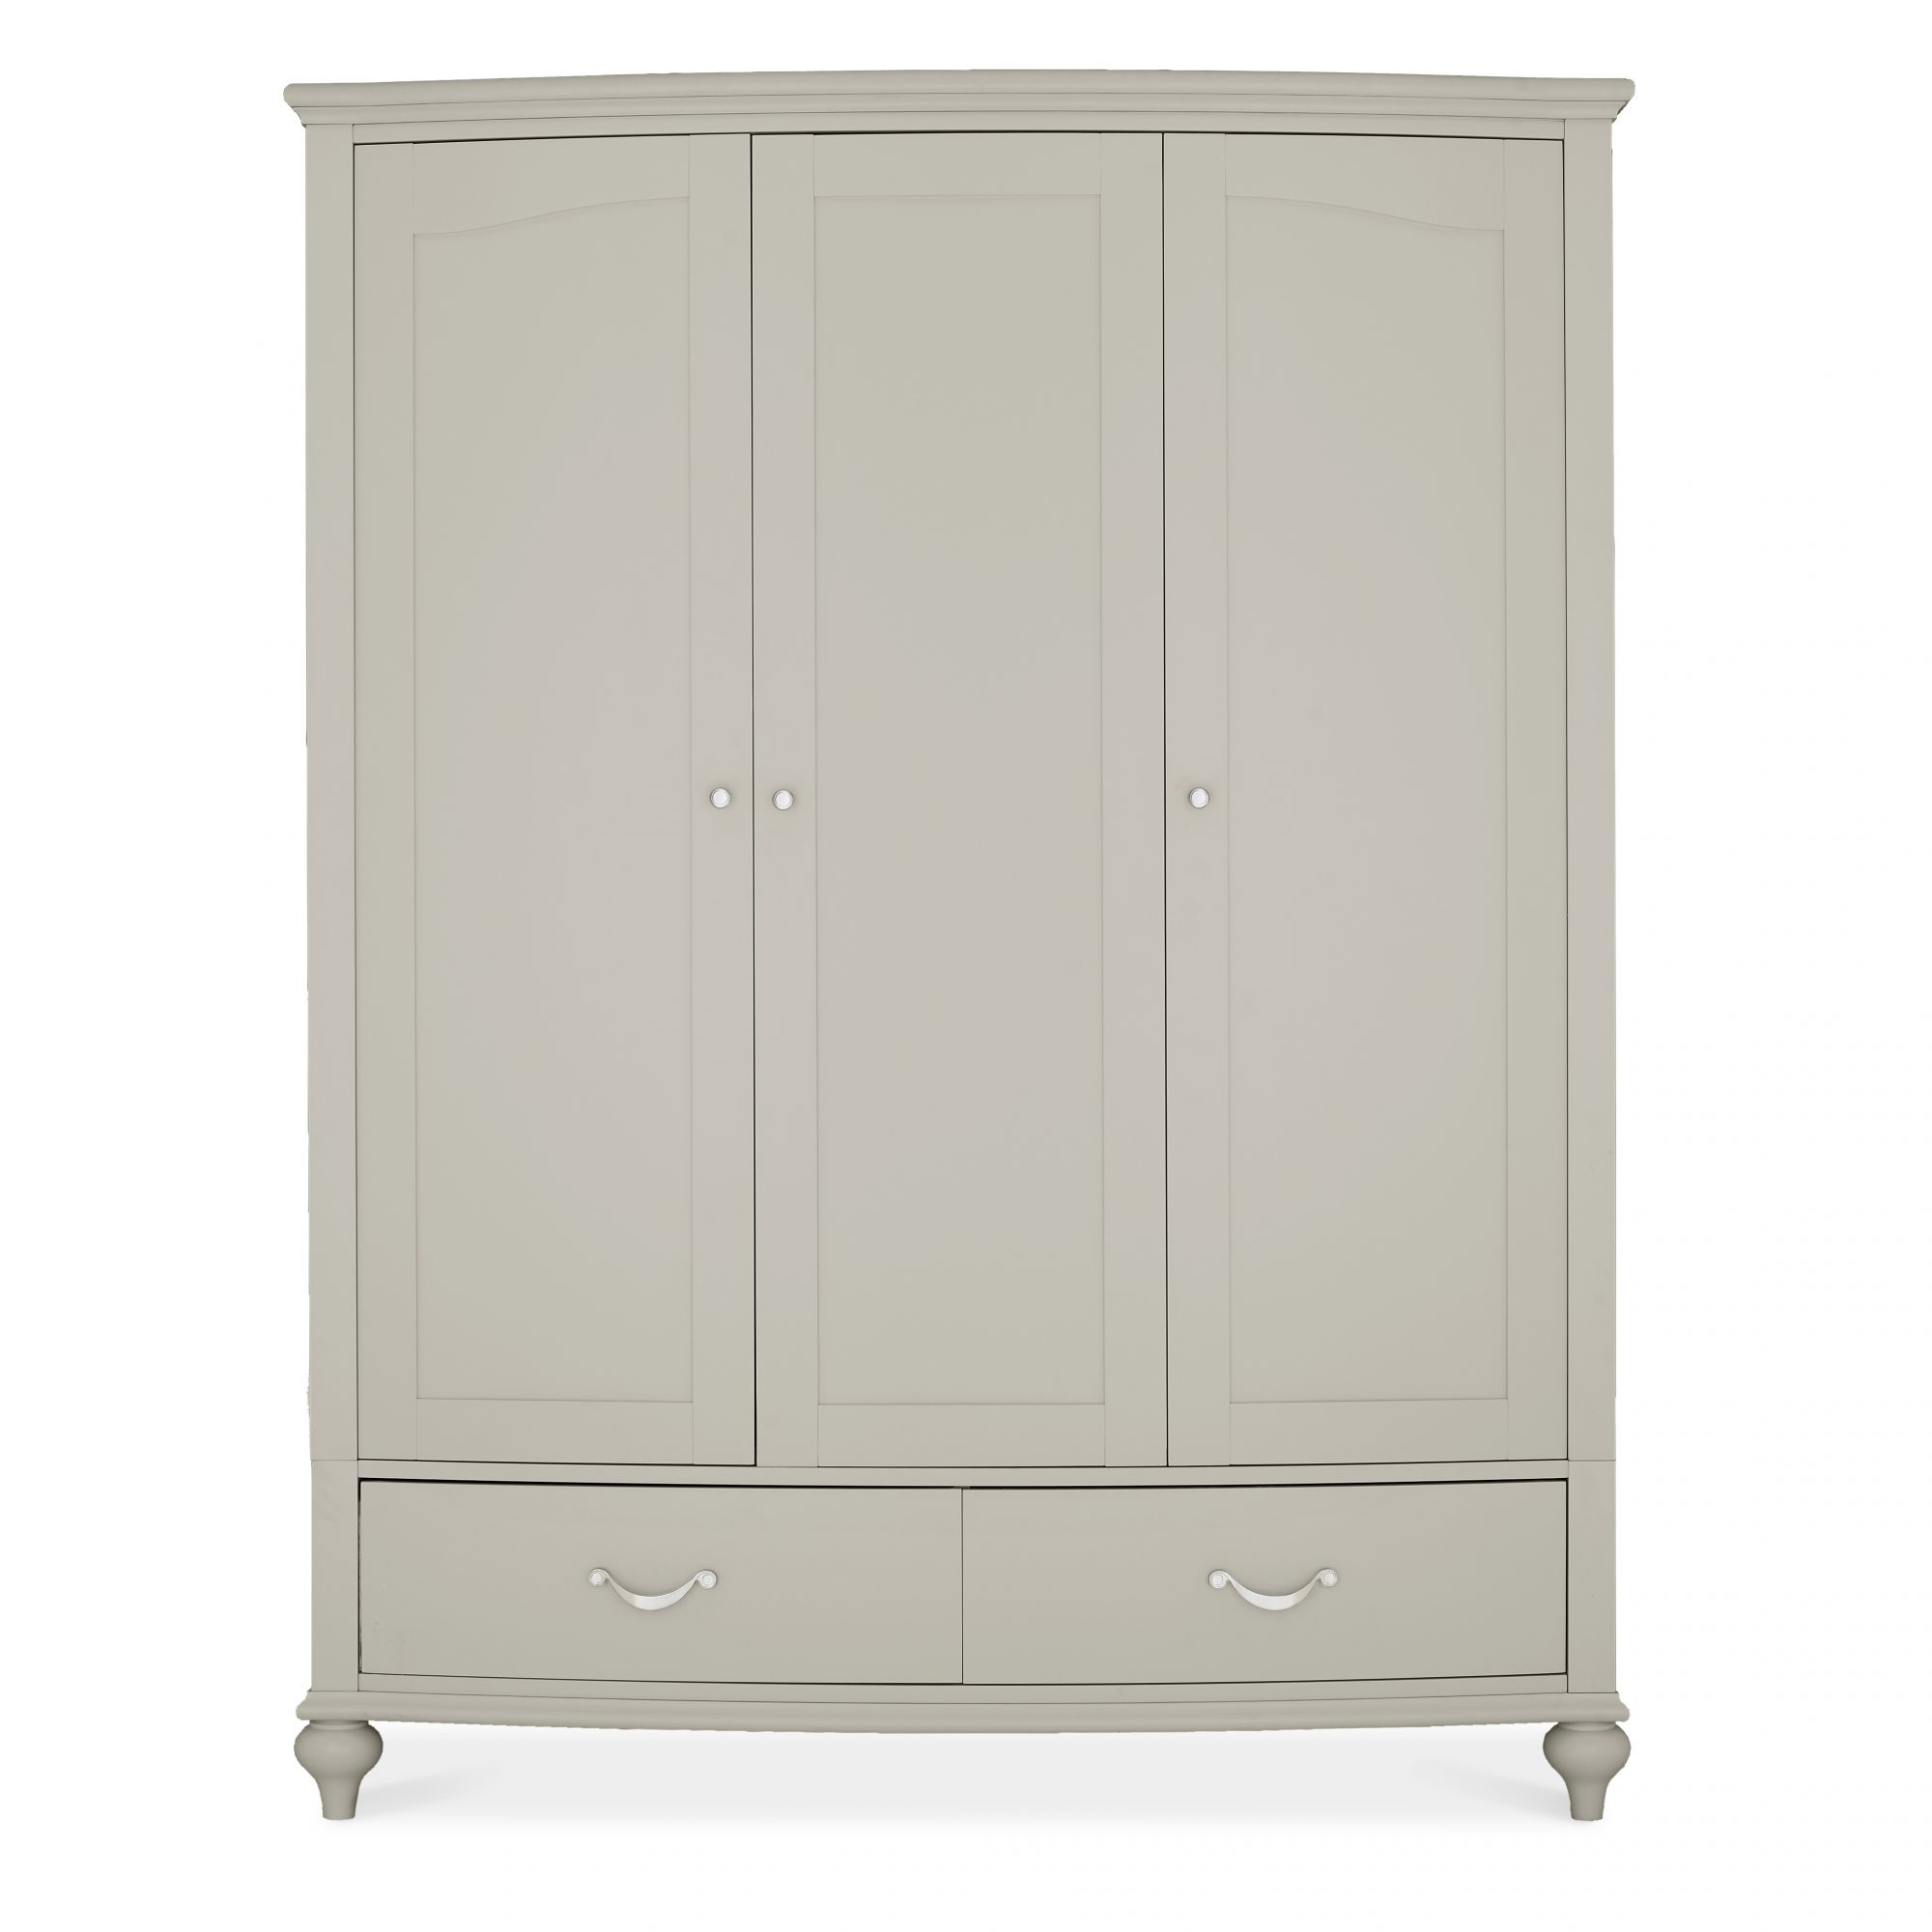 product haven montreux furniture urban wardrobe double grey